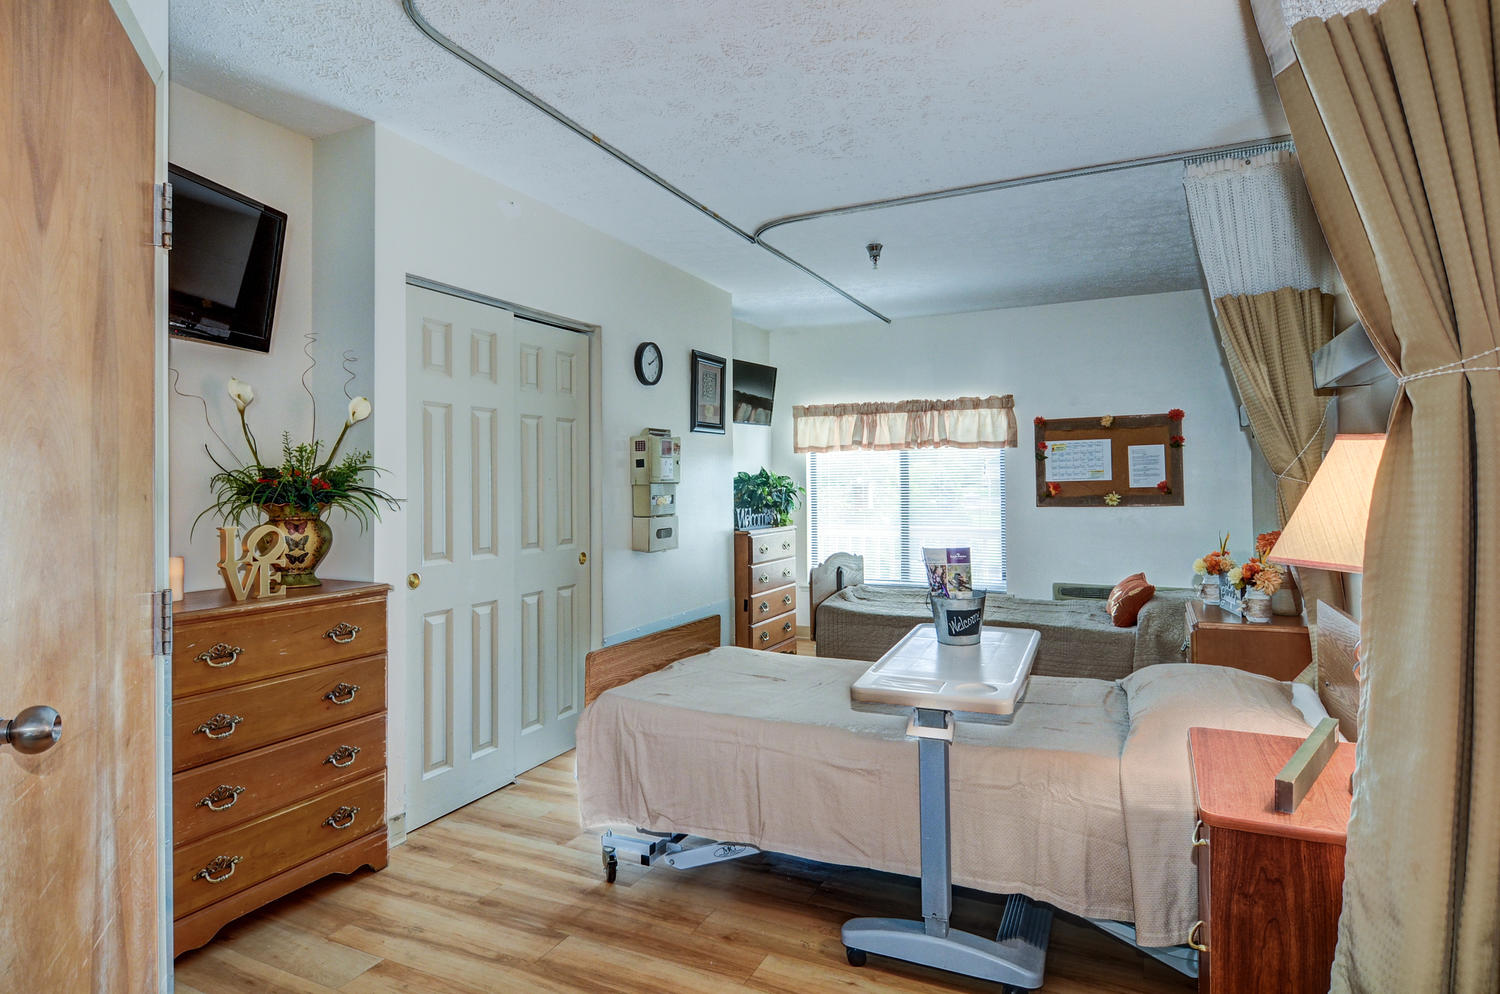 Stonerise Parkersburg skilled nursing home and transitional care facility patient room